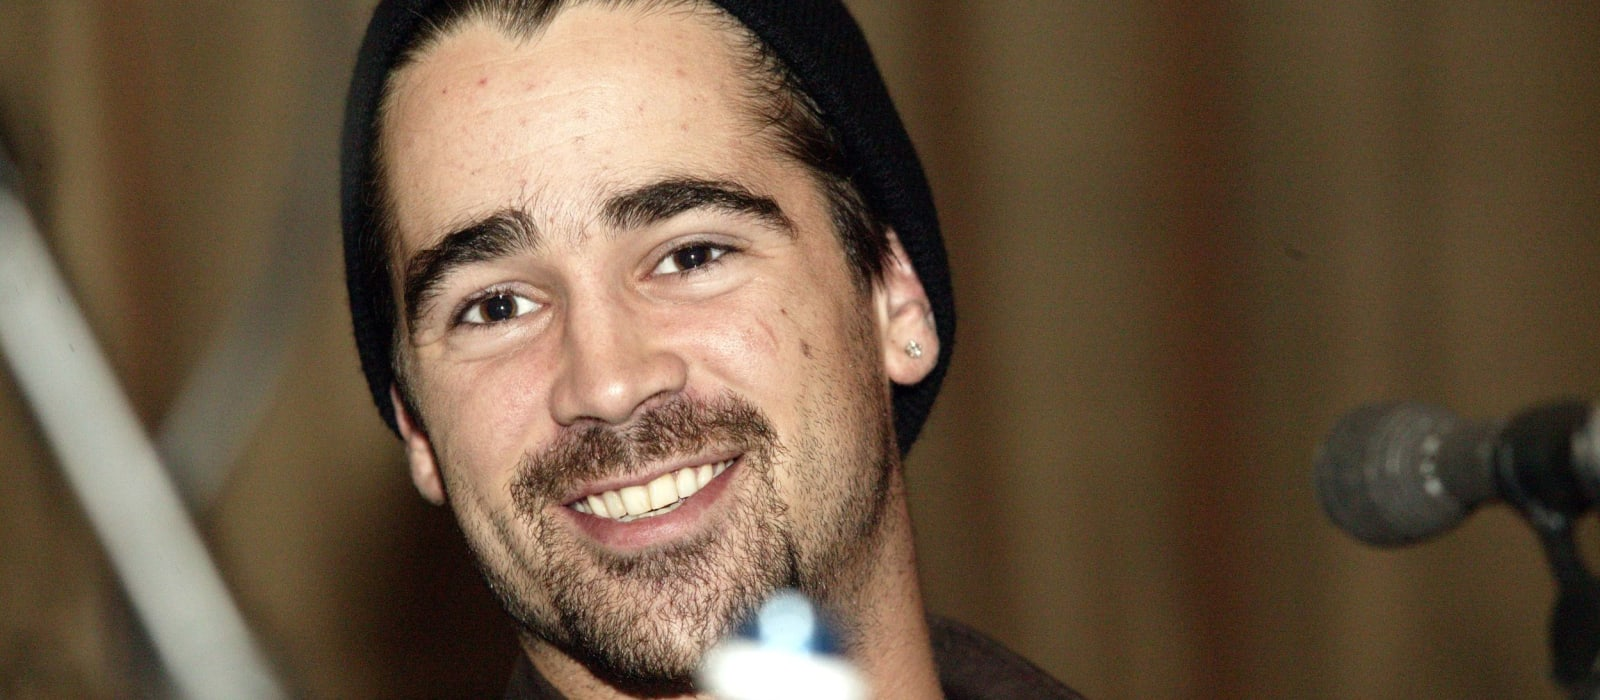 Festival Memories with Colin Farrell